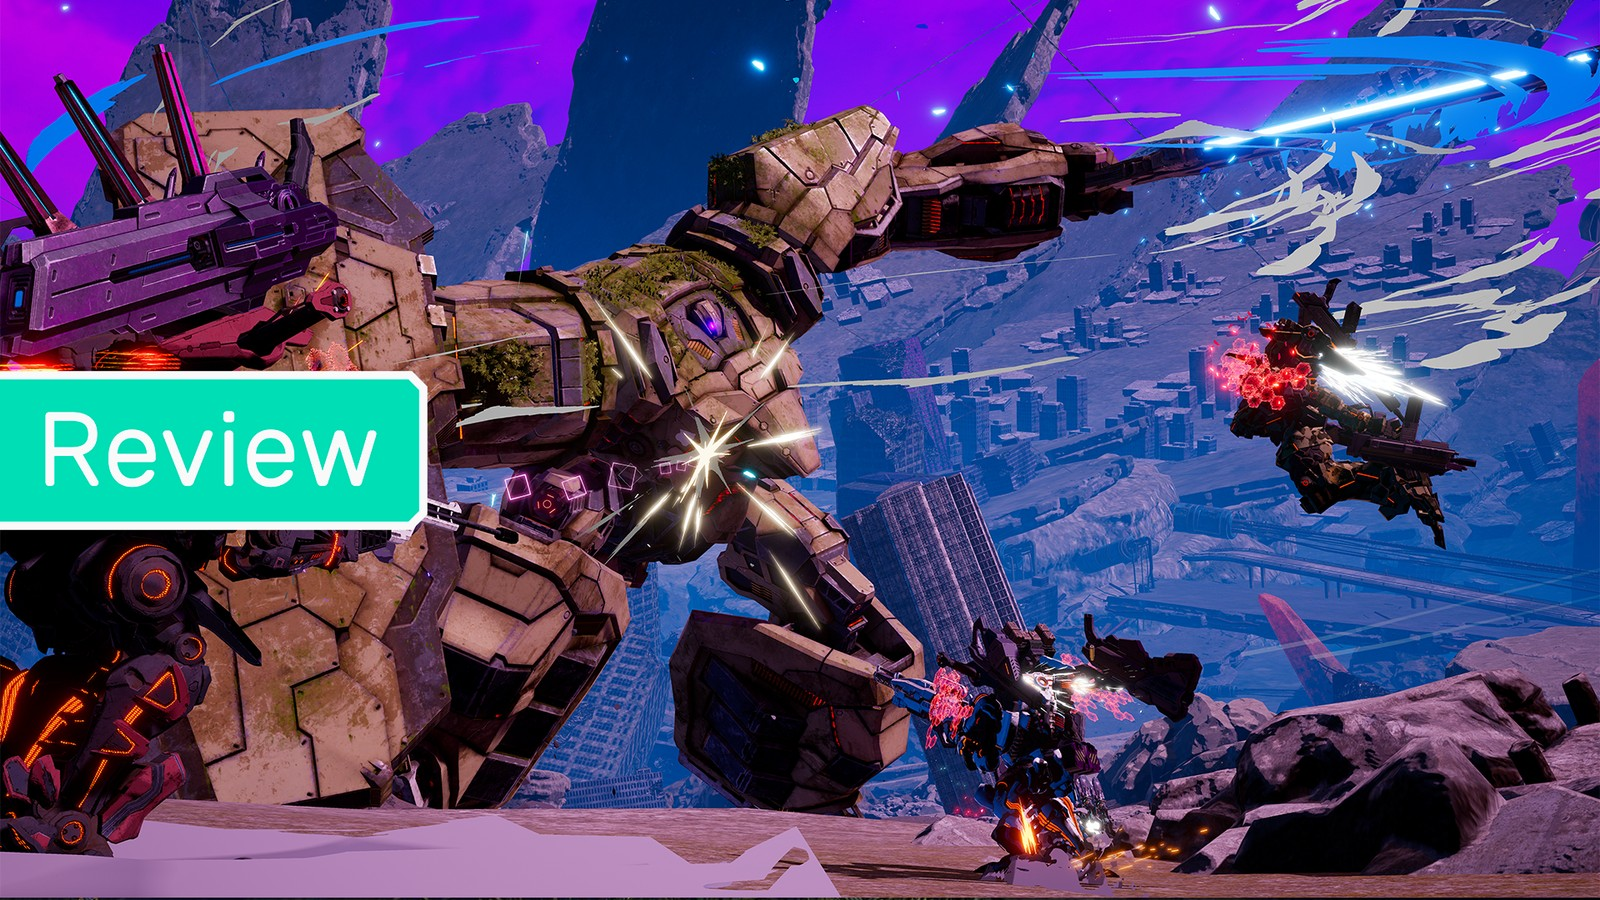 'Daemon X Machina' Soars with Colorful and Dynamic Mecha Action